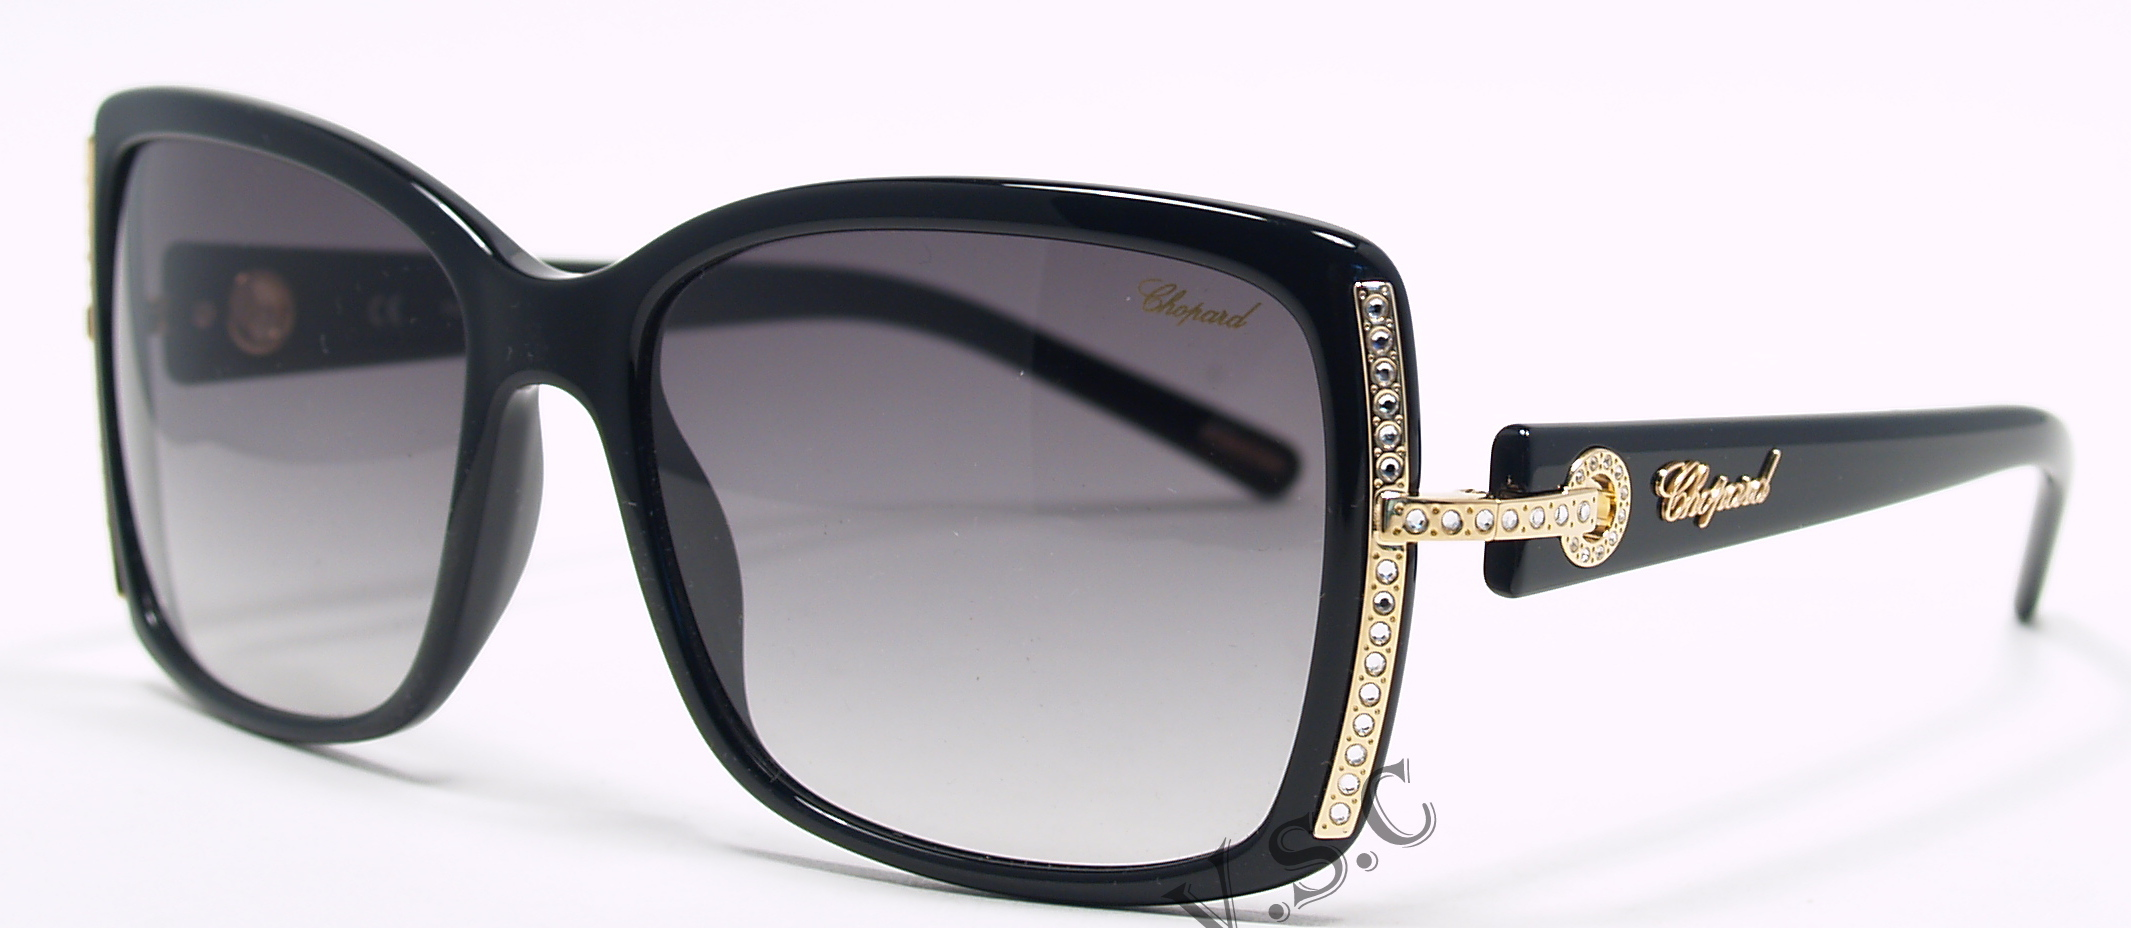 chopard sunglasses pi08  chopard sunglasses